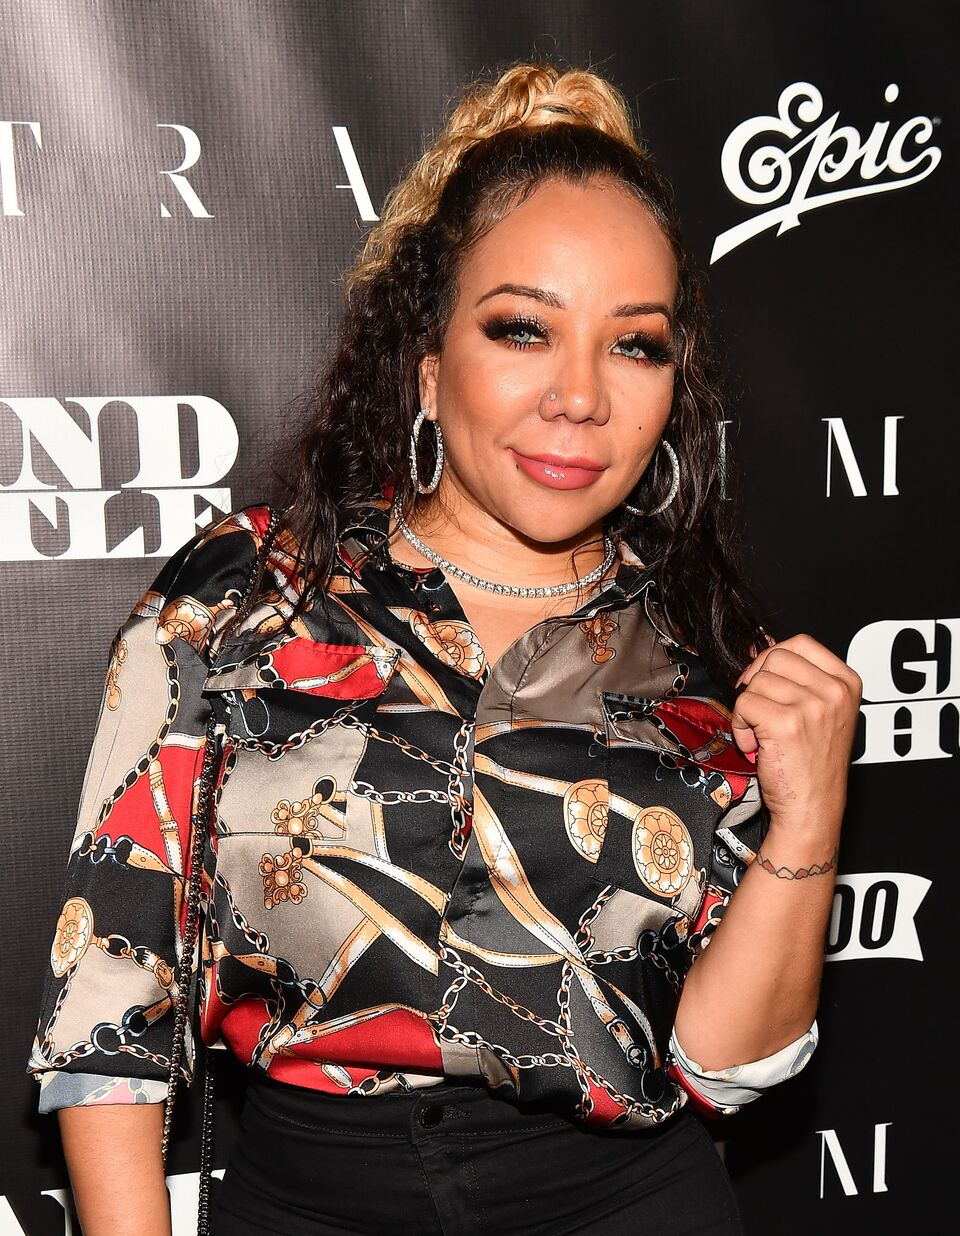 """Tameka """"Tiny"""" Harris attends T.I.'s """"Dime Trap"""" Private Album Release Party at The Trap Museum on October 4, 2018 in Atlanta, Georgia.   Source: Getty Images"""